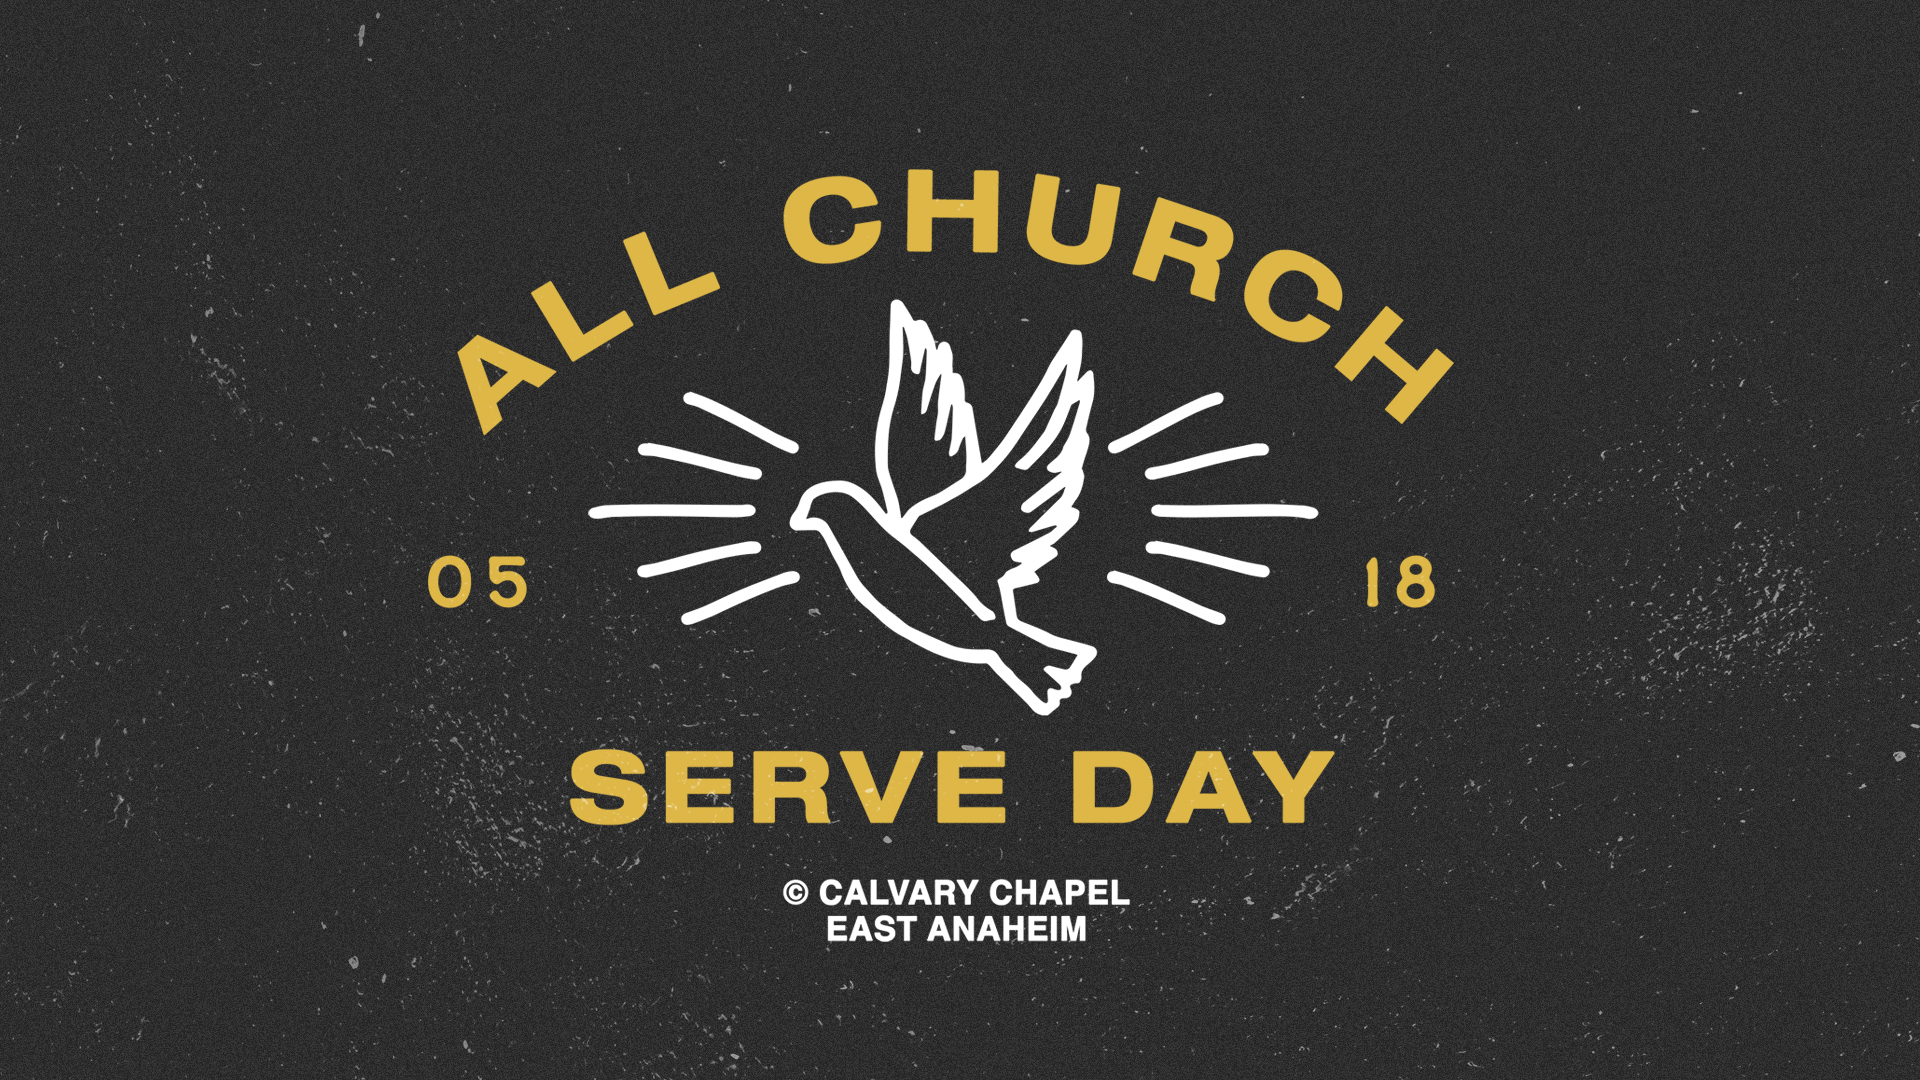 all church serve day graphic.JPG